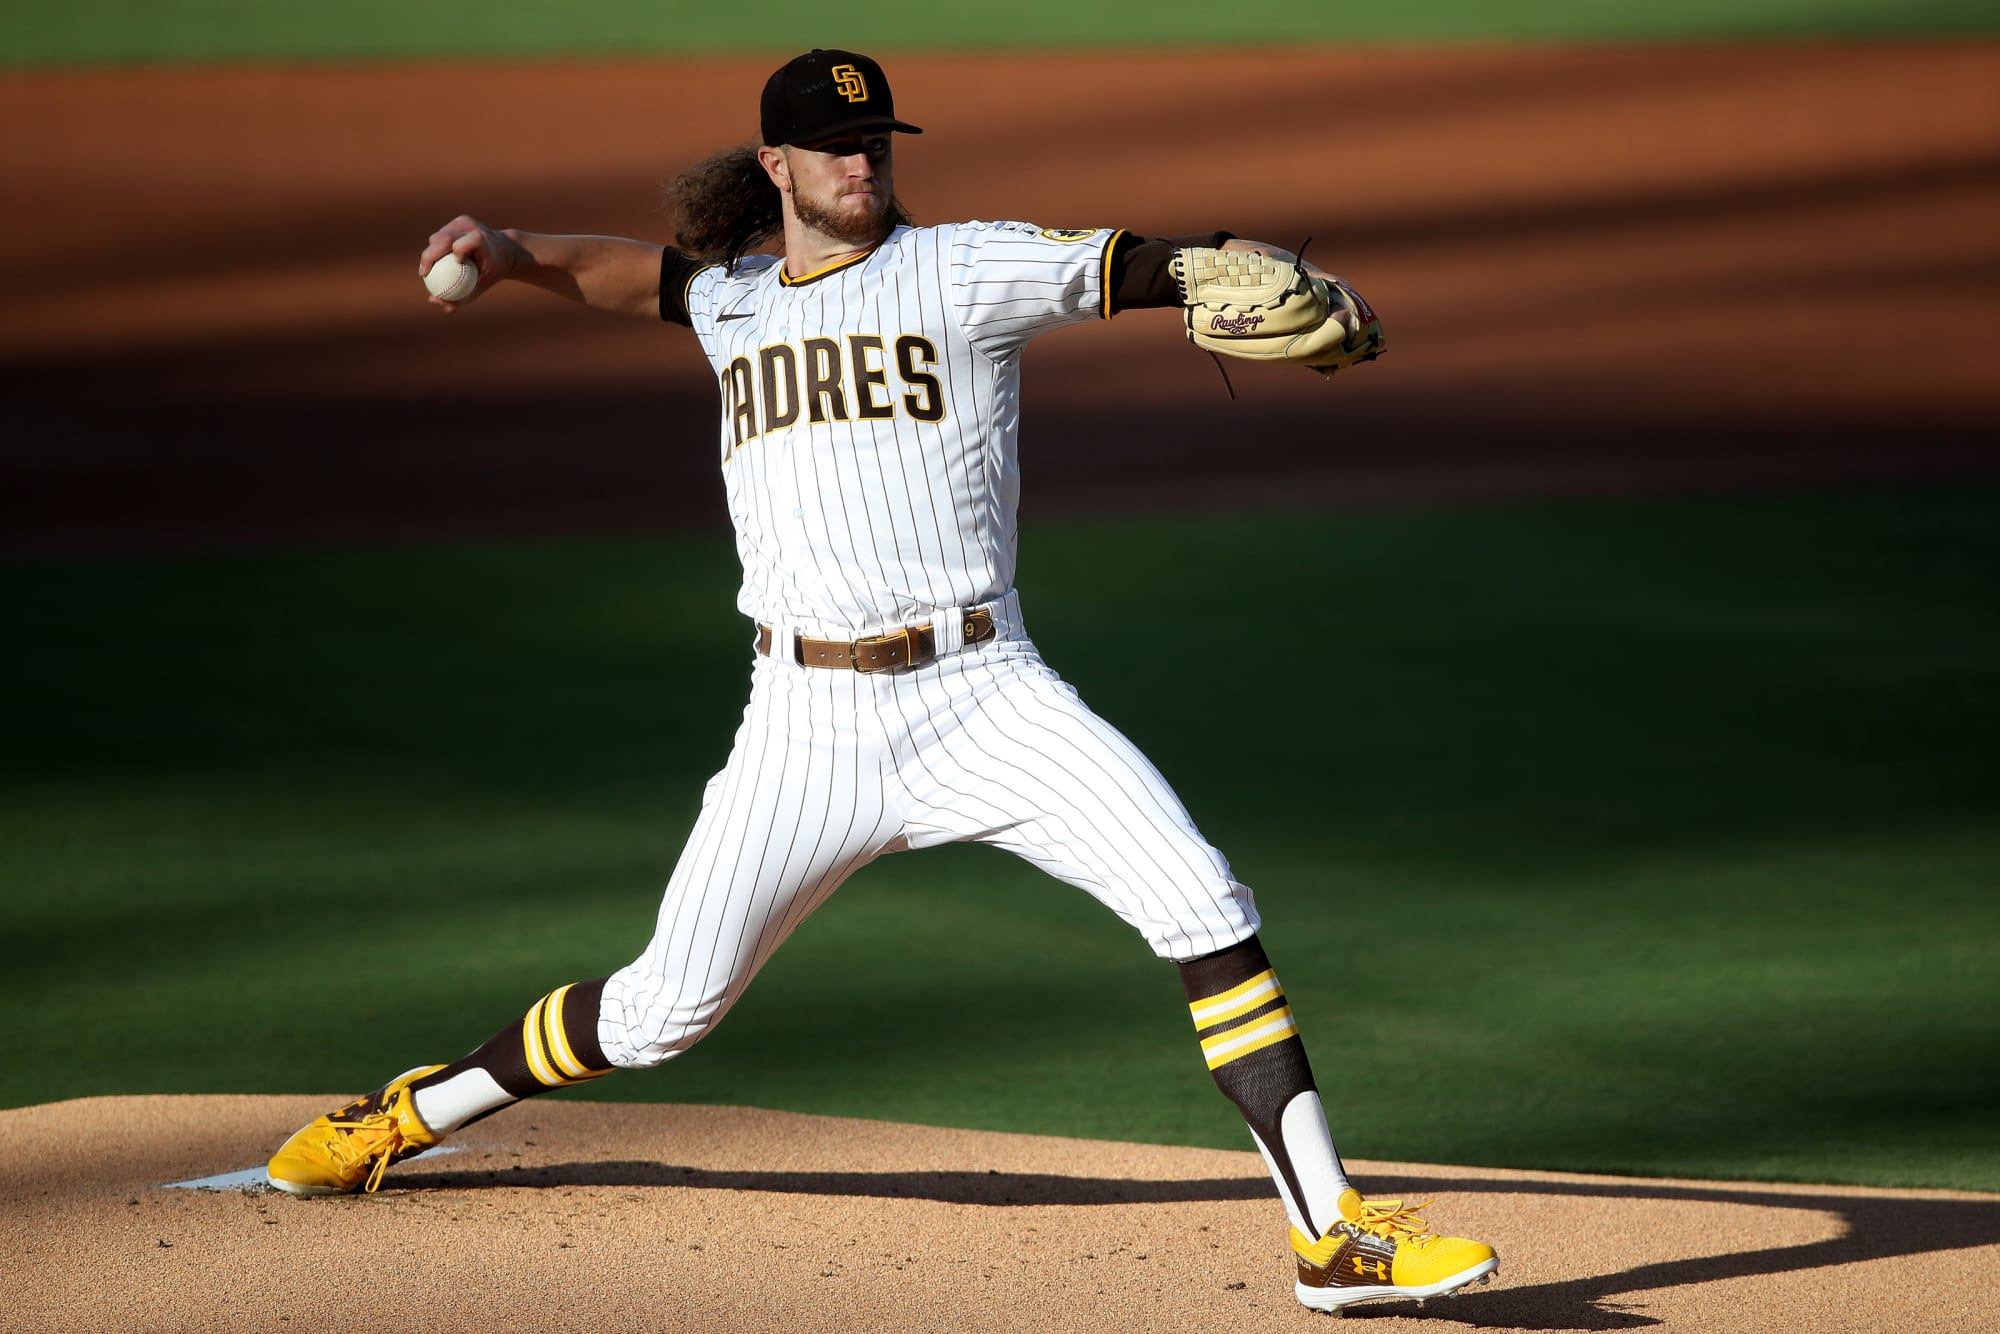 Padres: Three things to watch in Dodgers series